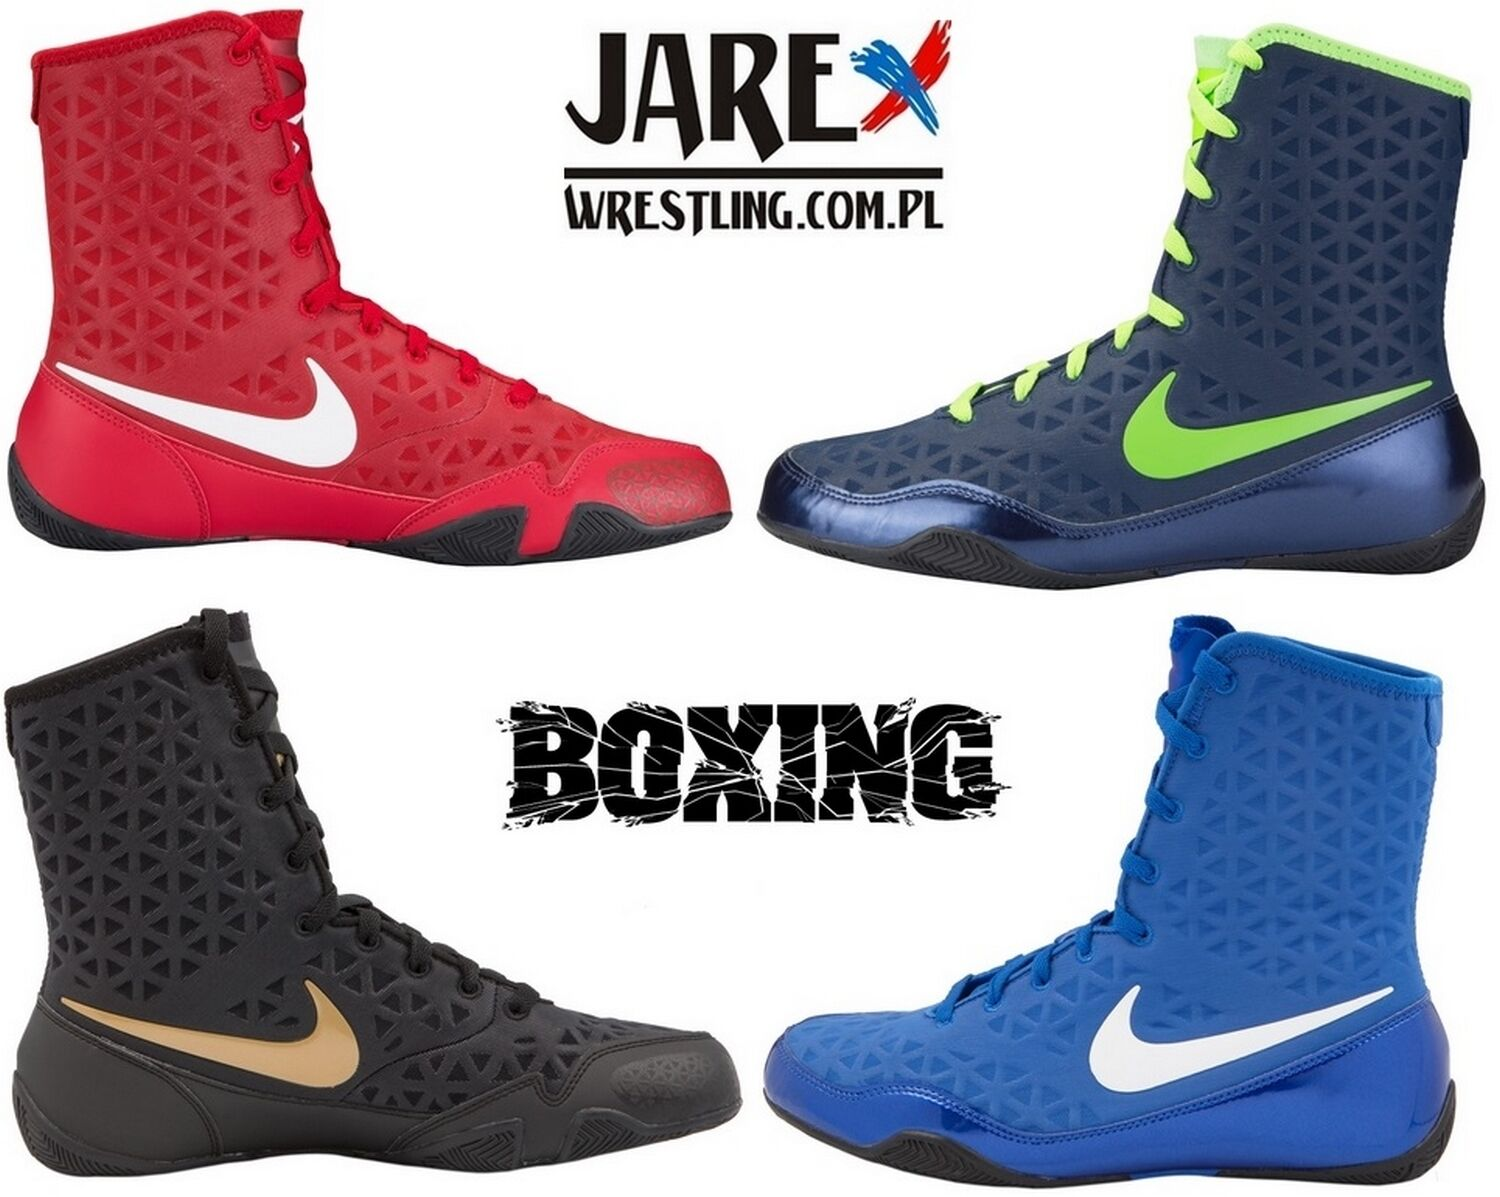 Boxstiefel Nike KO Boxing Boots Shoes Boxer Fighter